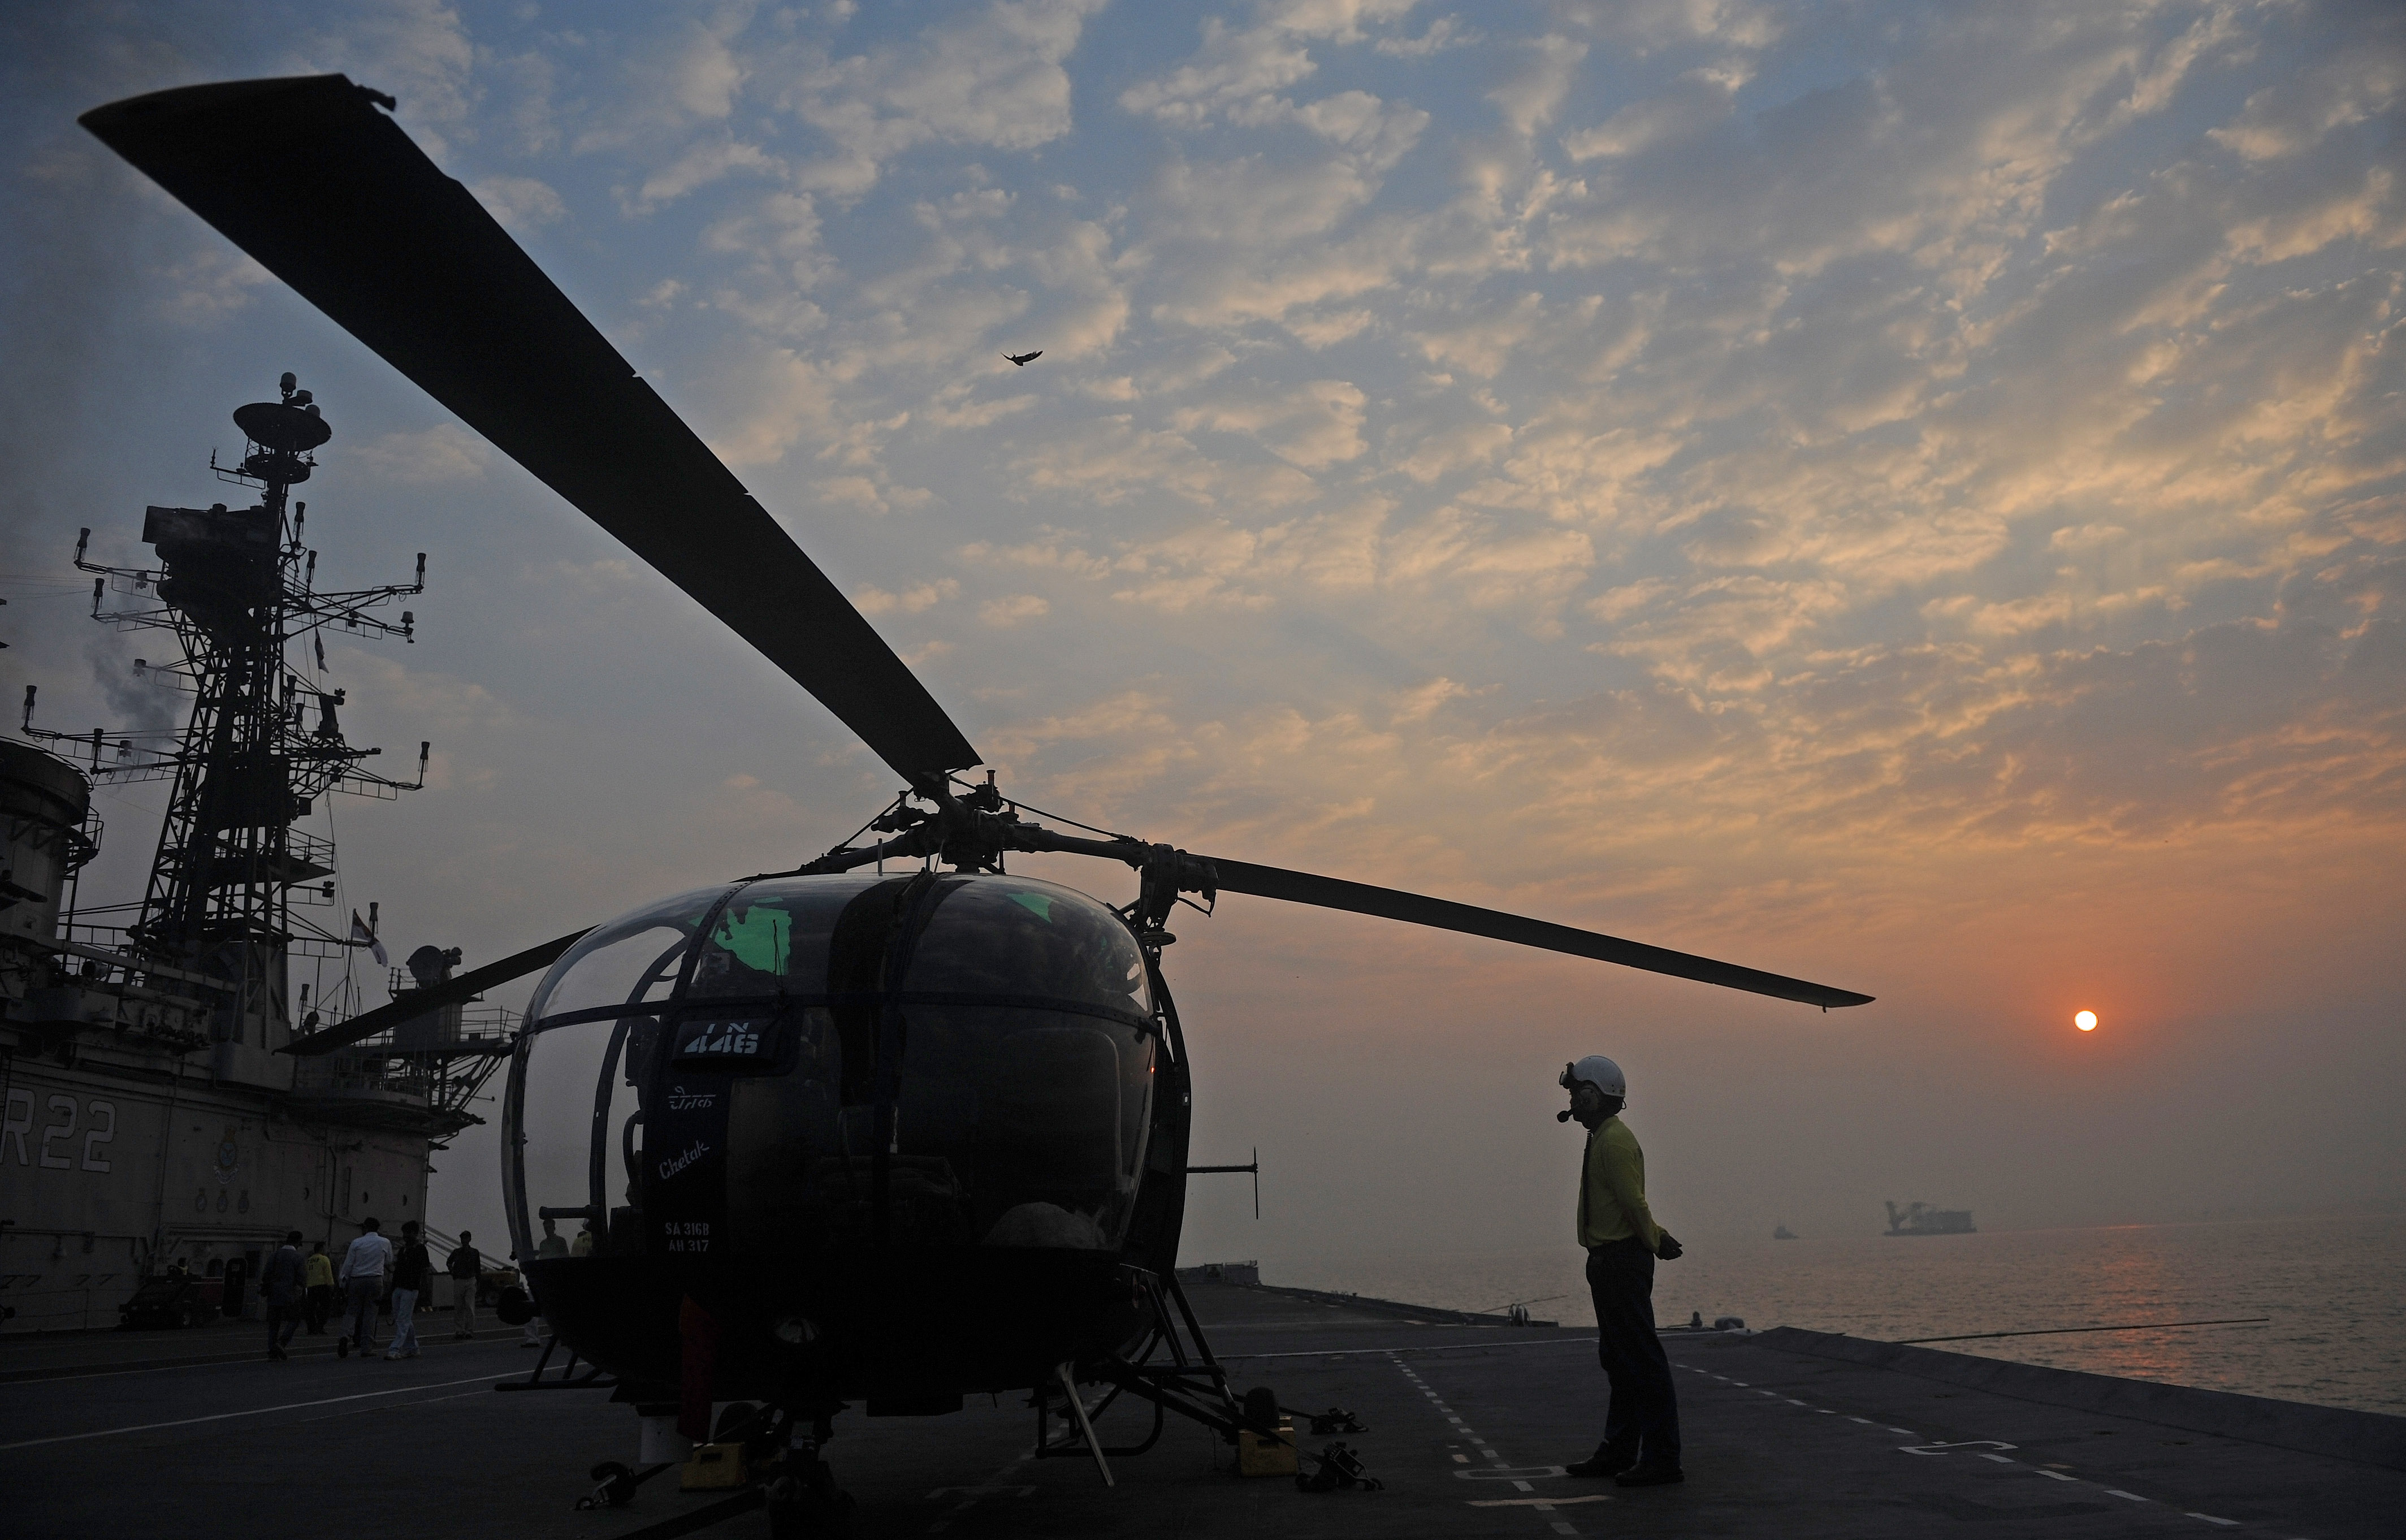 Indian Navy floats $10B helicopter acquisition program